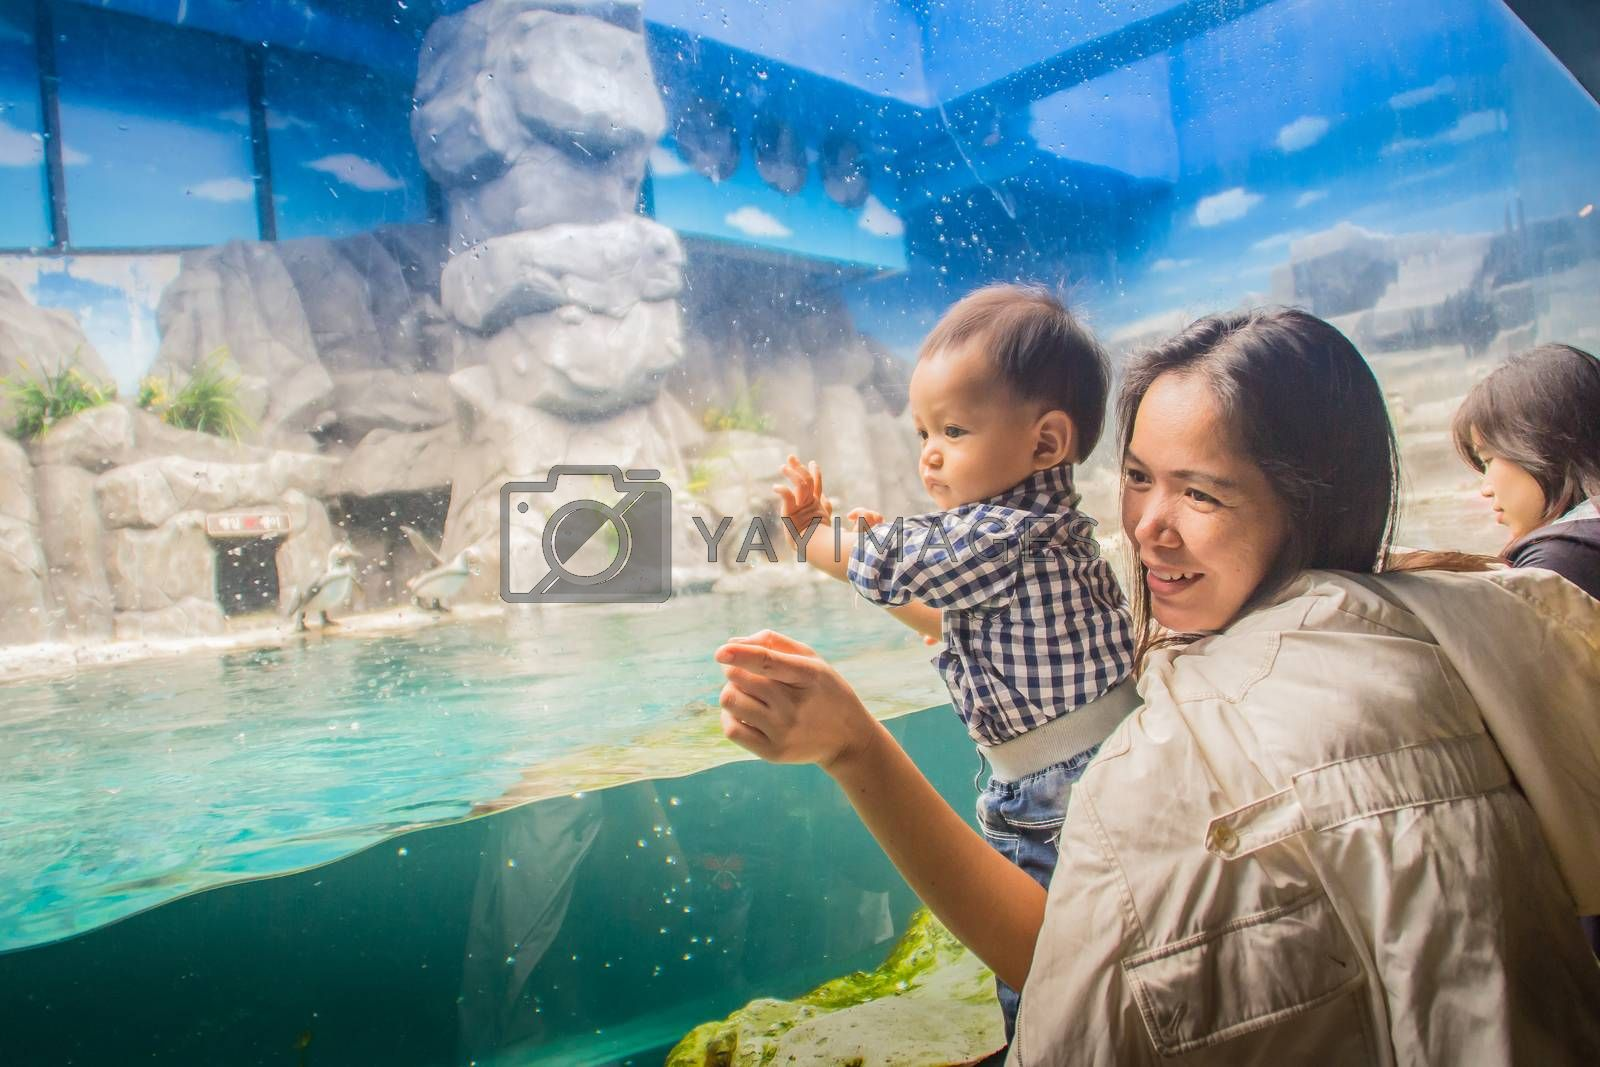 Jeju Island, Korea - November 13, 2016 : The tourist visited Hanwah Aqua Planet Jeju, located nearby Seopjikoji and offers versitle features, including an aquarium as the main attraction, Marine Science, Kiz Planet and many more convenience facilities.